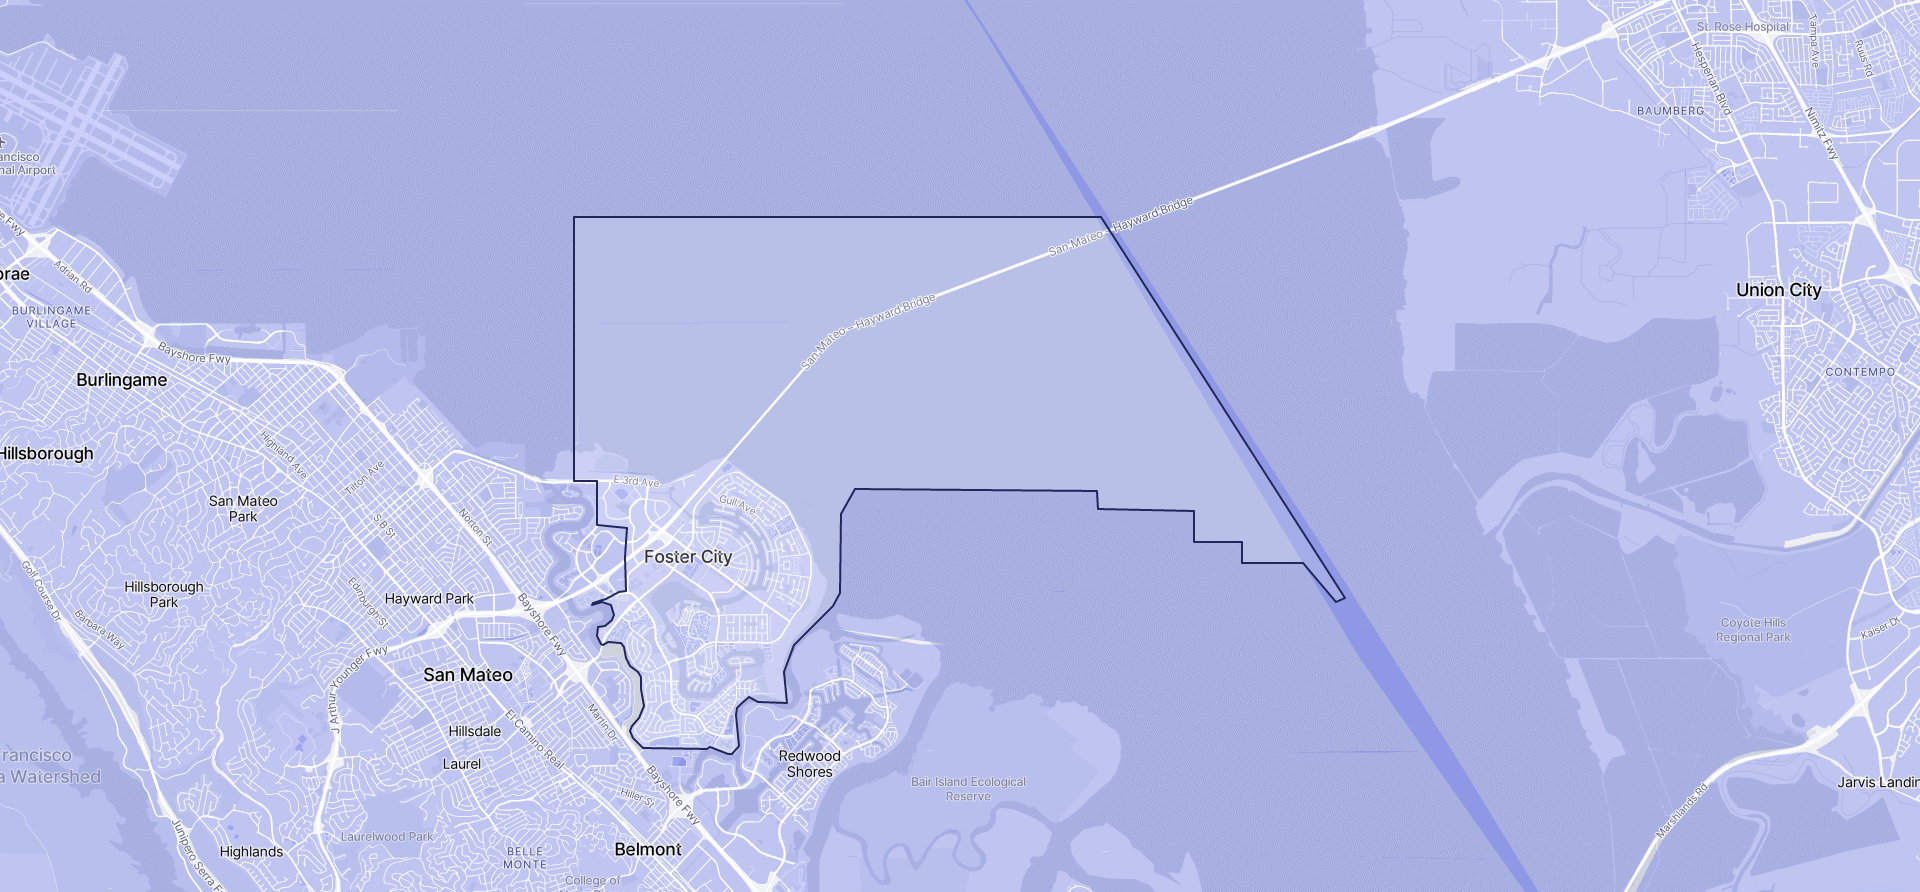 Image of Foster City boundaries on a map.